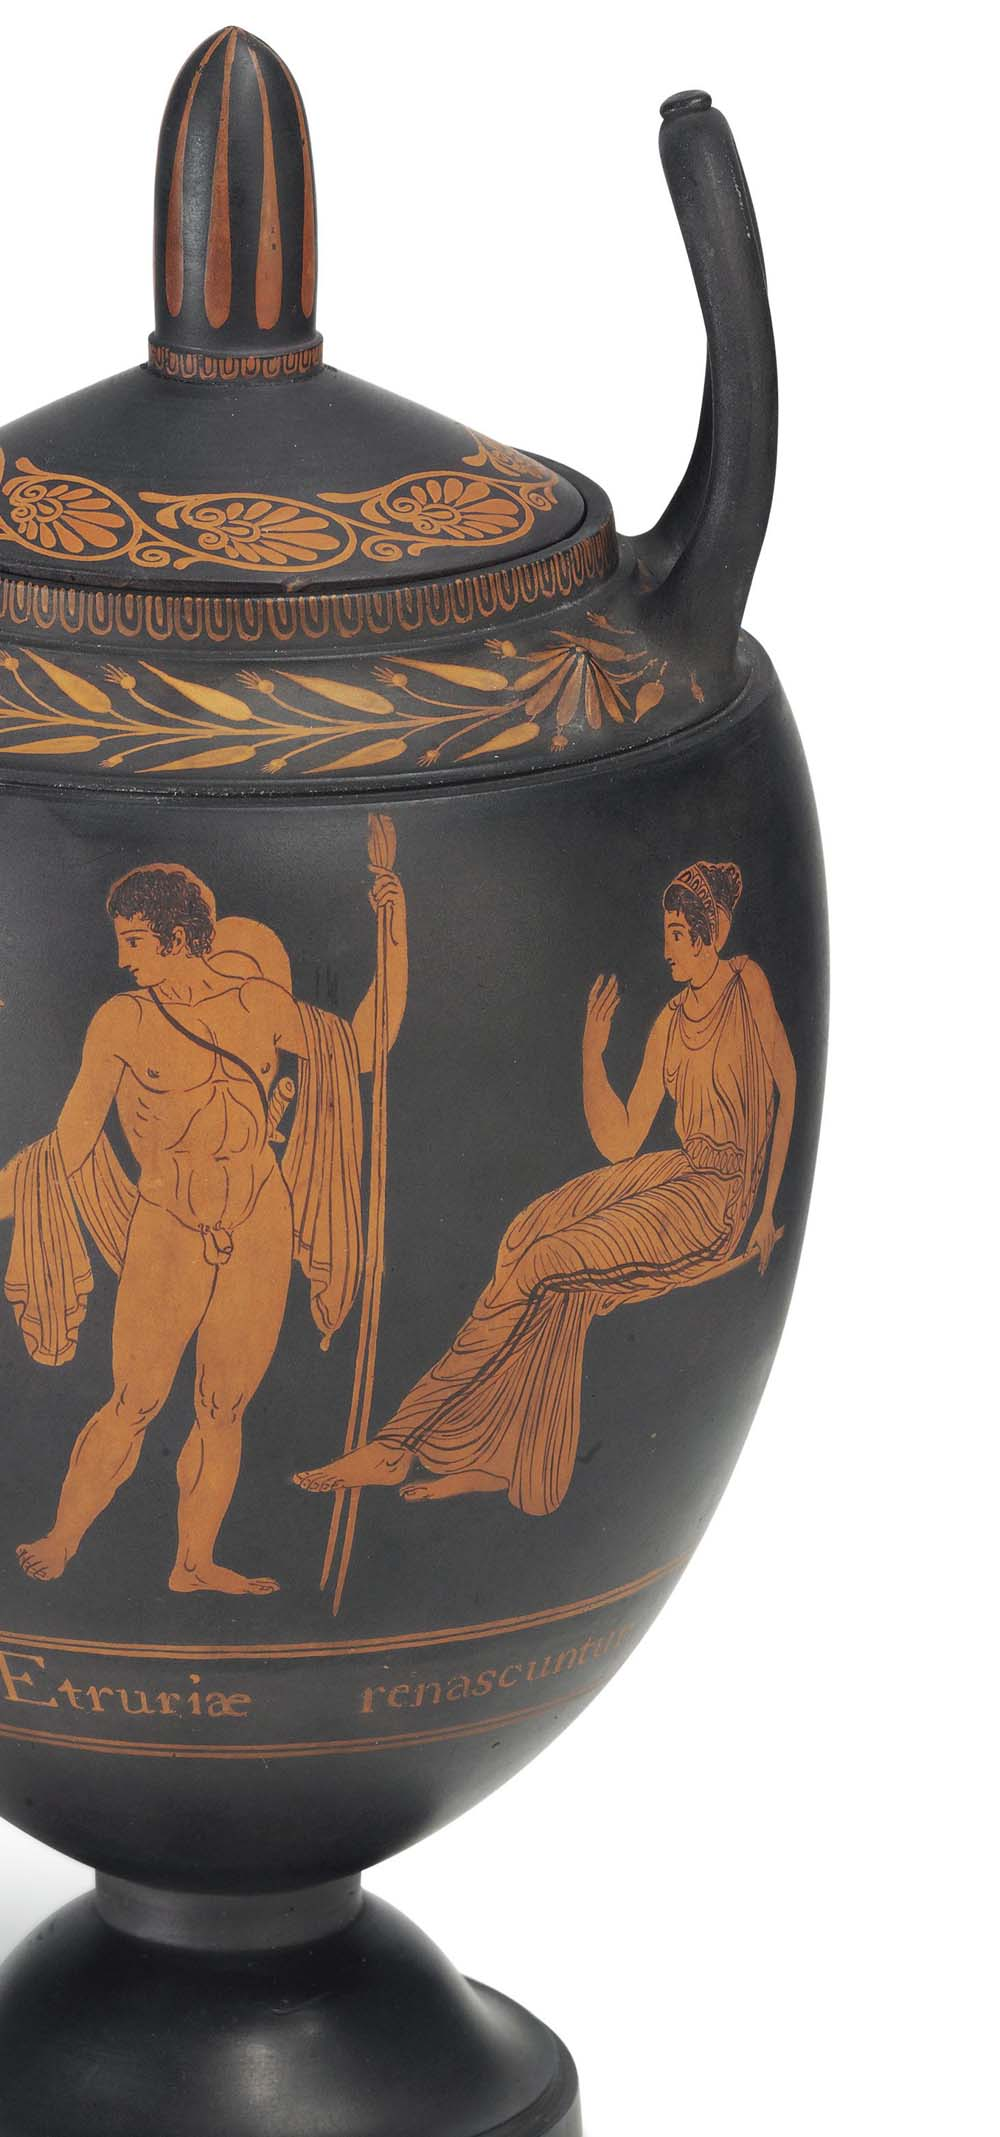 a close up a male and female greek figure shown on the side of a vase